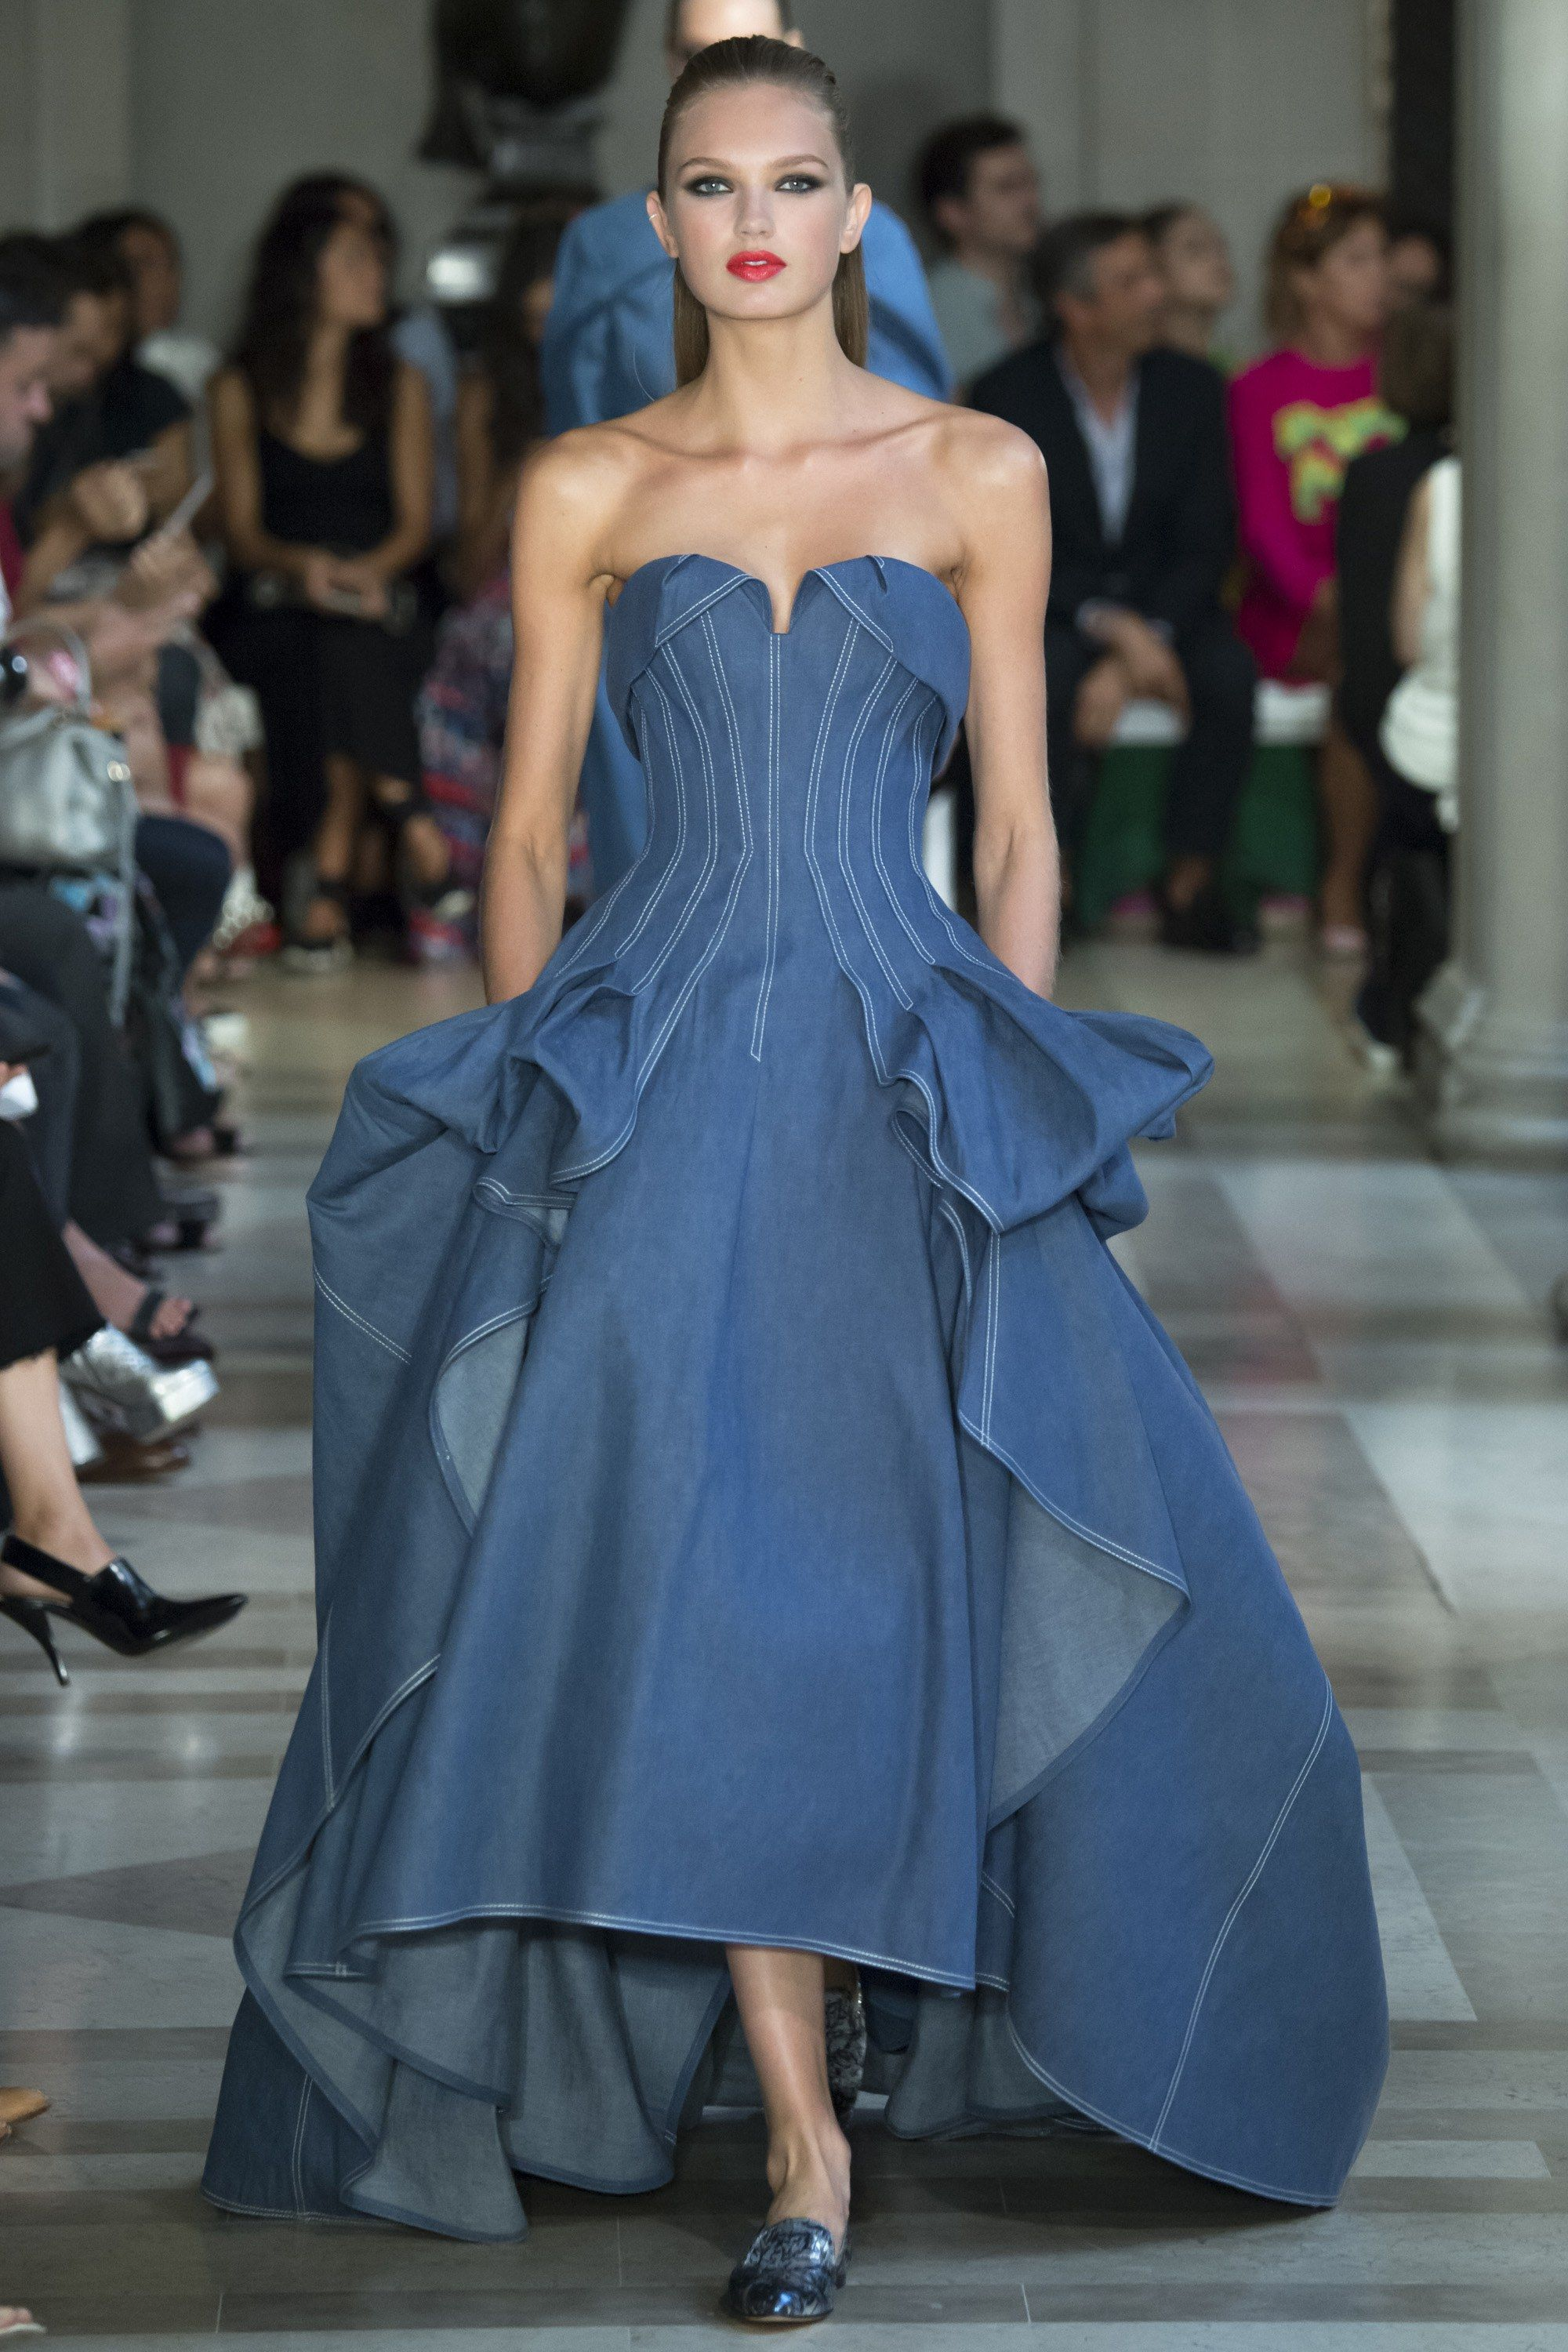 No one blinked at the marc jacobs fashion show when a model wore a - The Complete Carolina Herrera Spring 2017 Ready To Wear Fashion Show Now On Vogue Runway